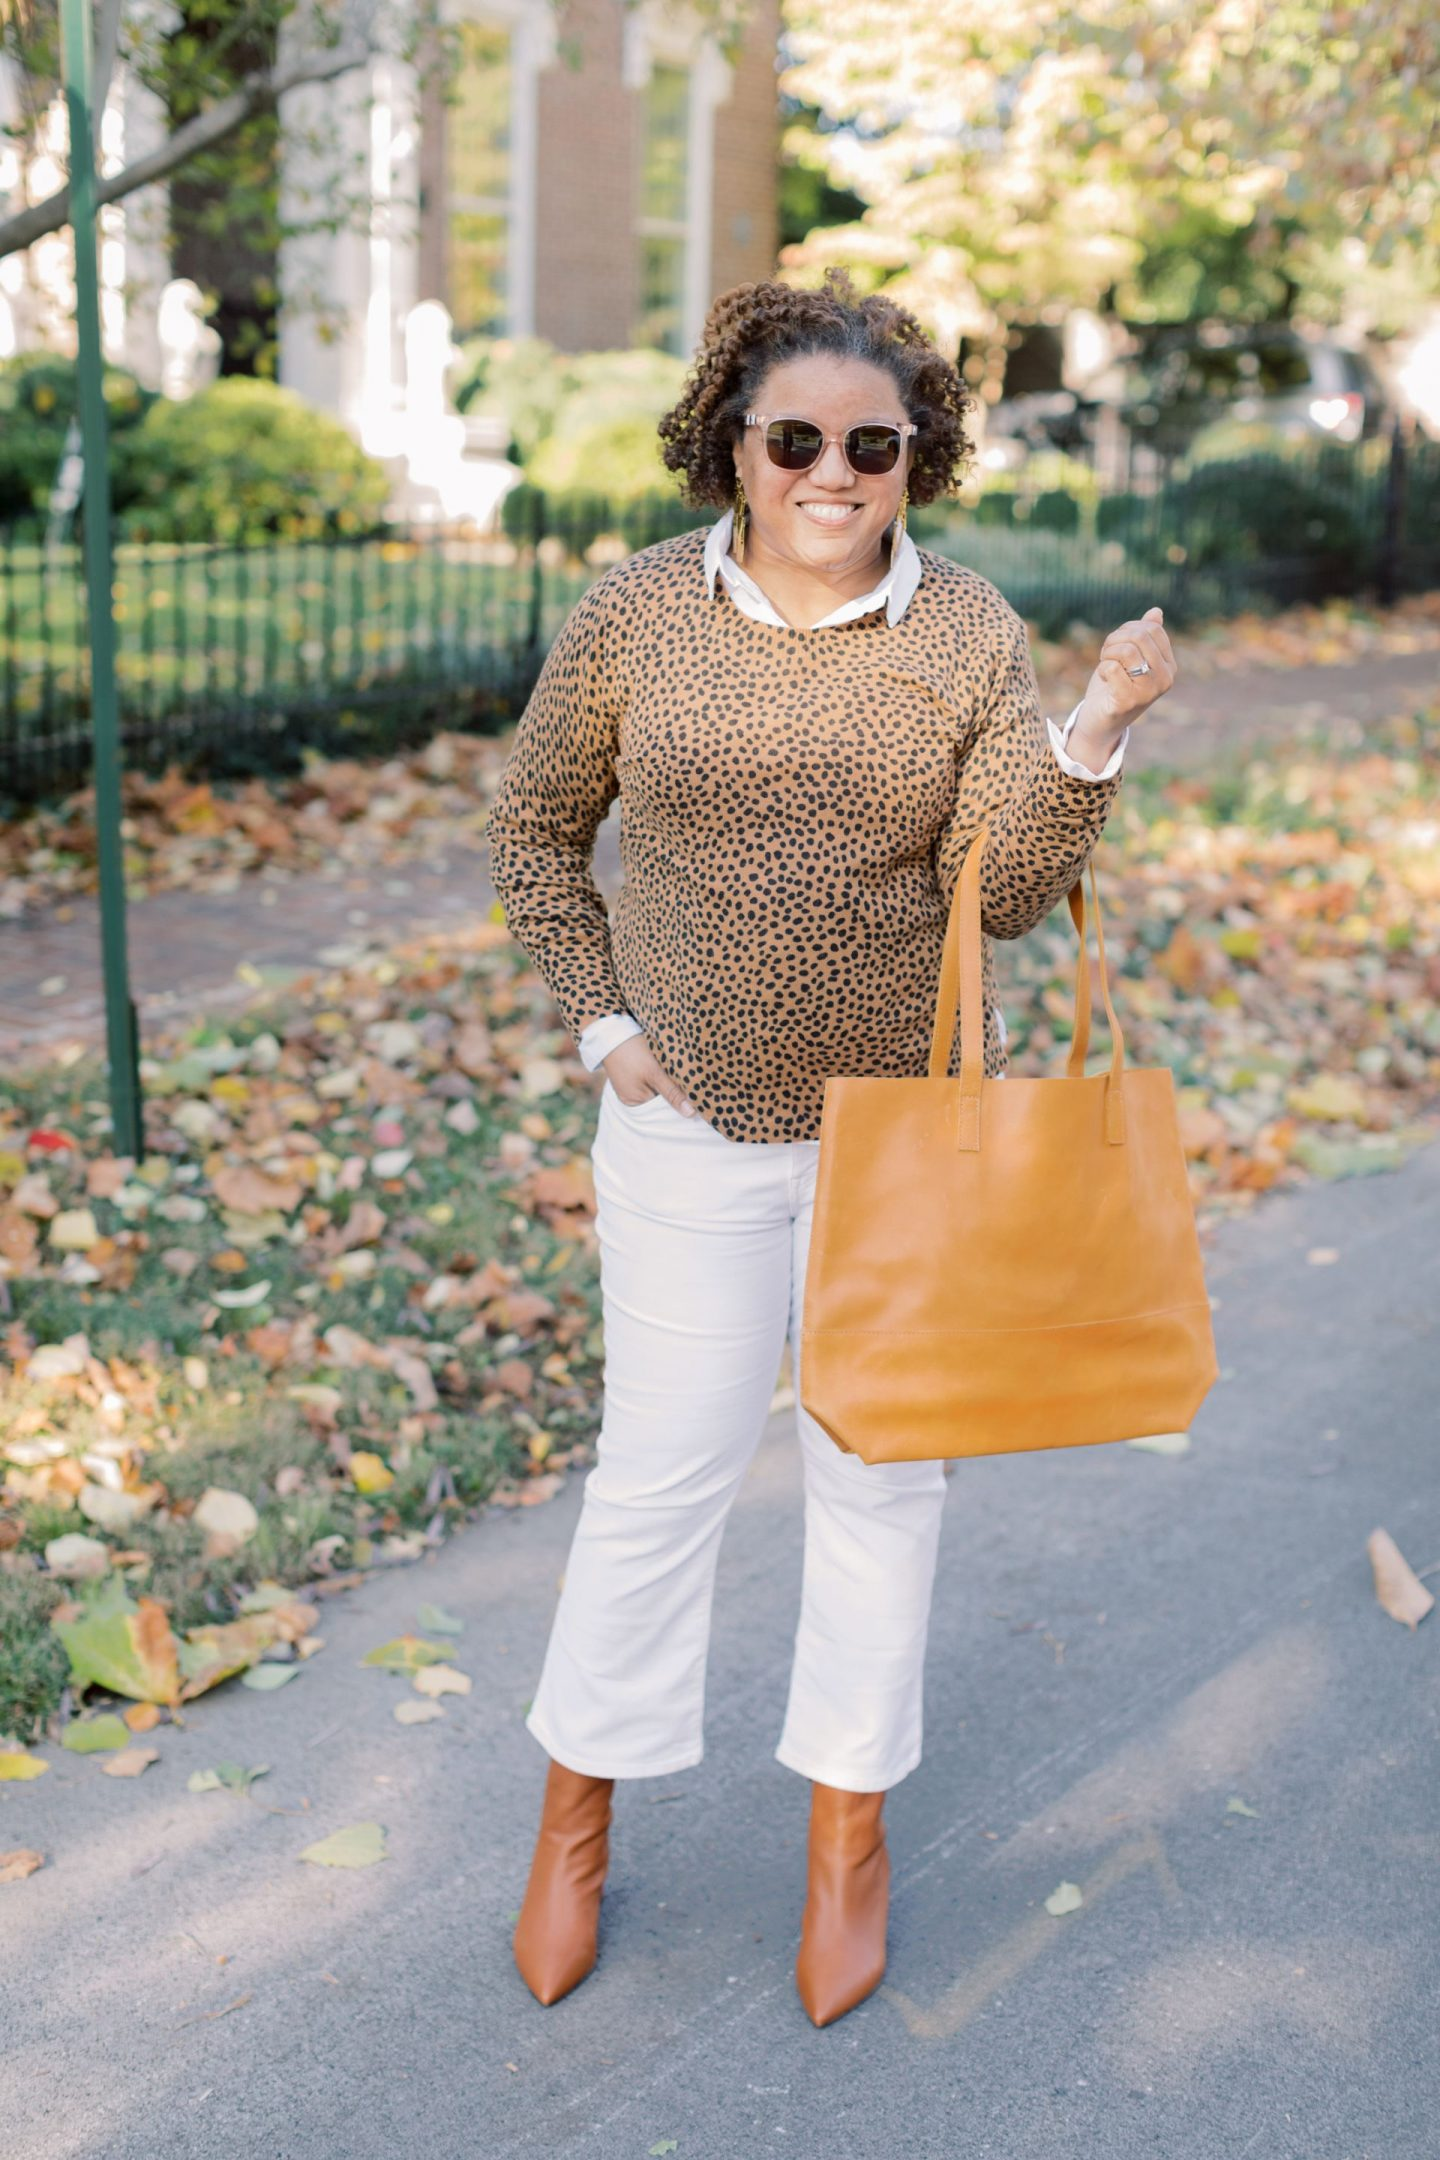 Wearing White After Labor Day by popular Kentucky fashion blog, Really Rynetta: image of a woman wearing a pair of Madewell Cali Demi-Boot Jeans in Pure White, white button up shirt, J. Crew Pointed-toe Sadie boots in leather, Kendra Scott Holland Statement Earrings, leopard print sweater, and holding a Able MAMUYE CLASSIC TOTE.